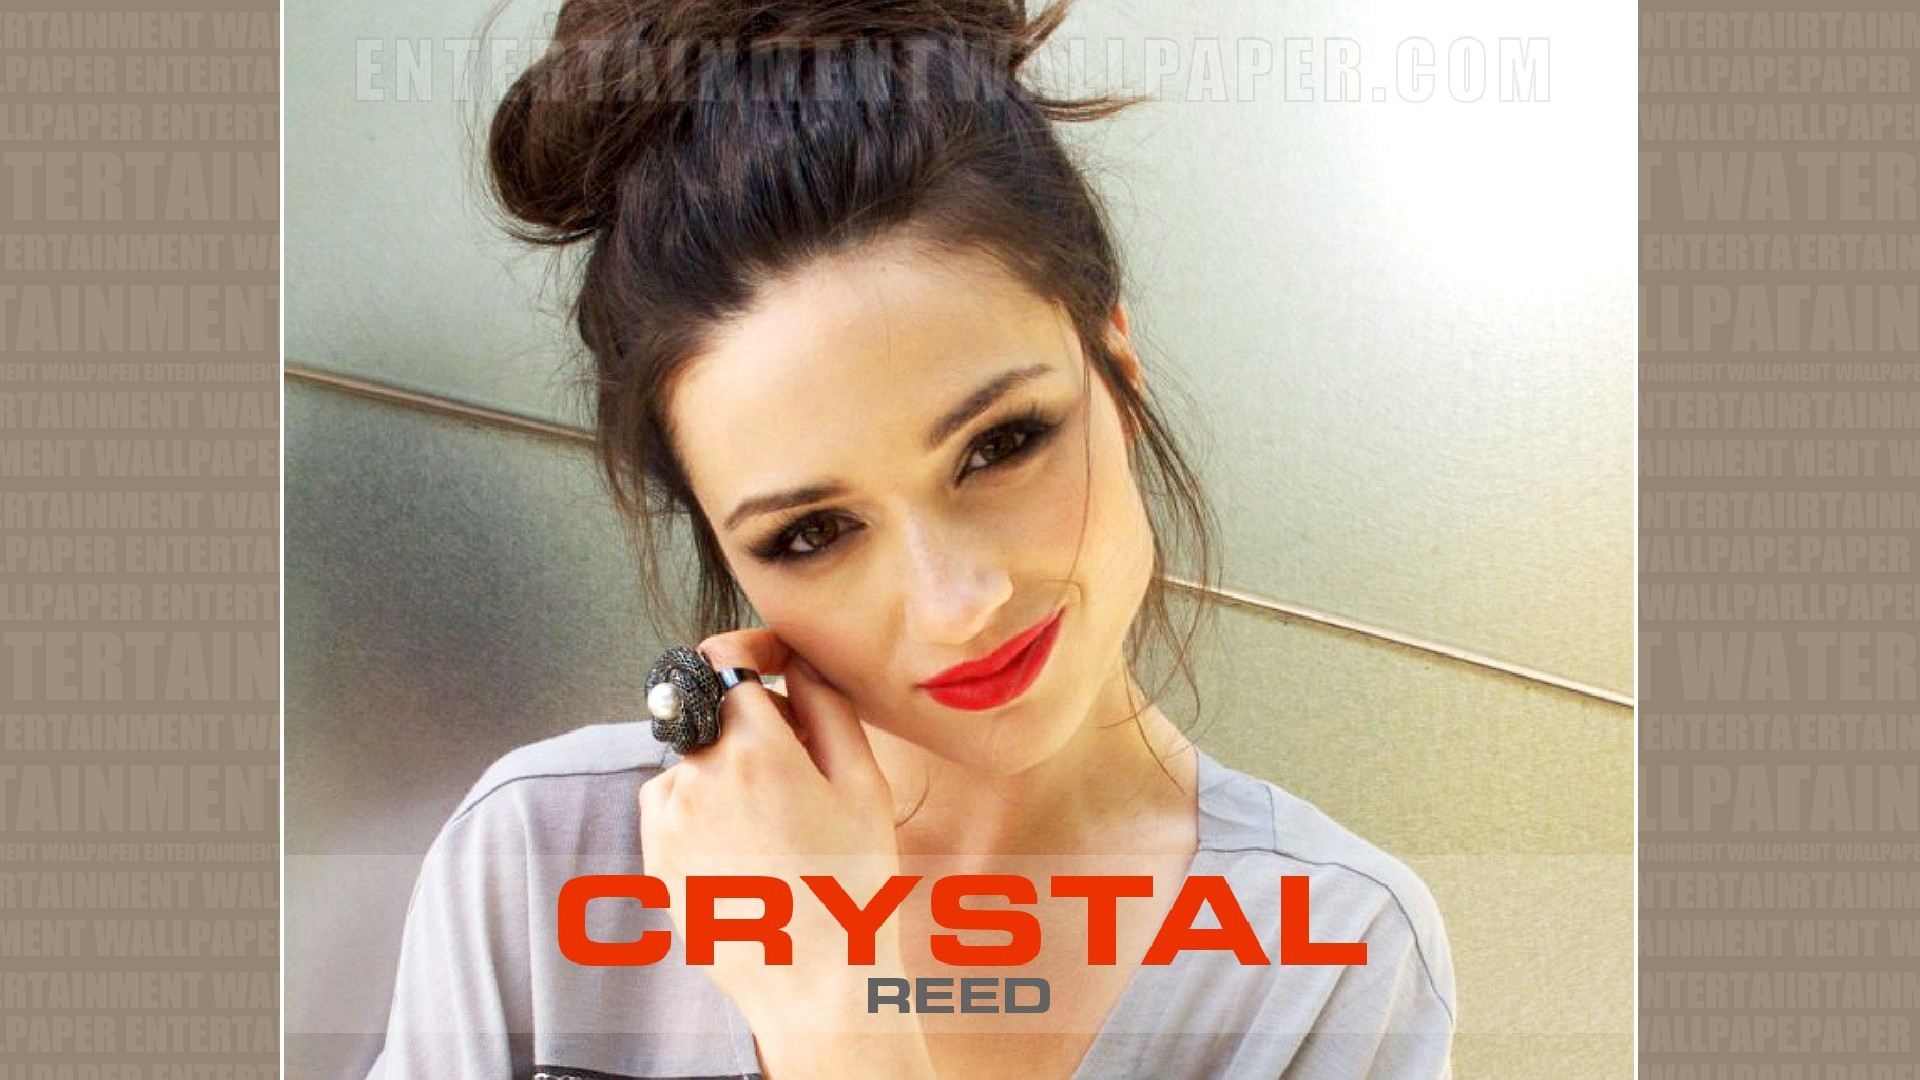 1920x1080 - Crystal Reed Wallpapers 16